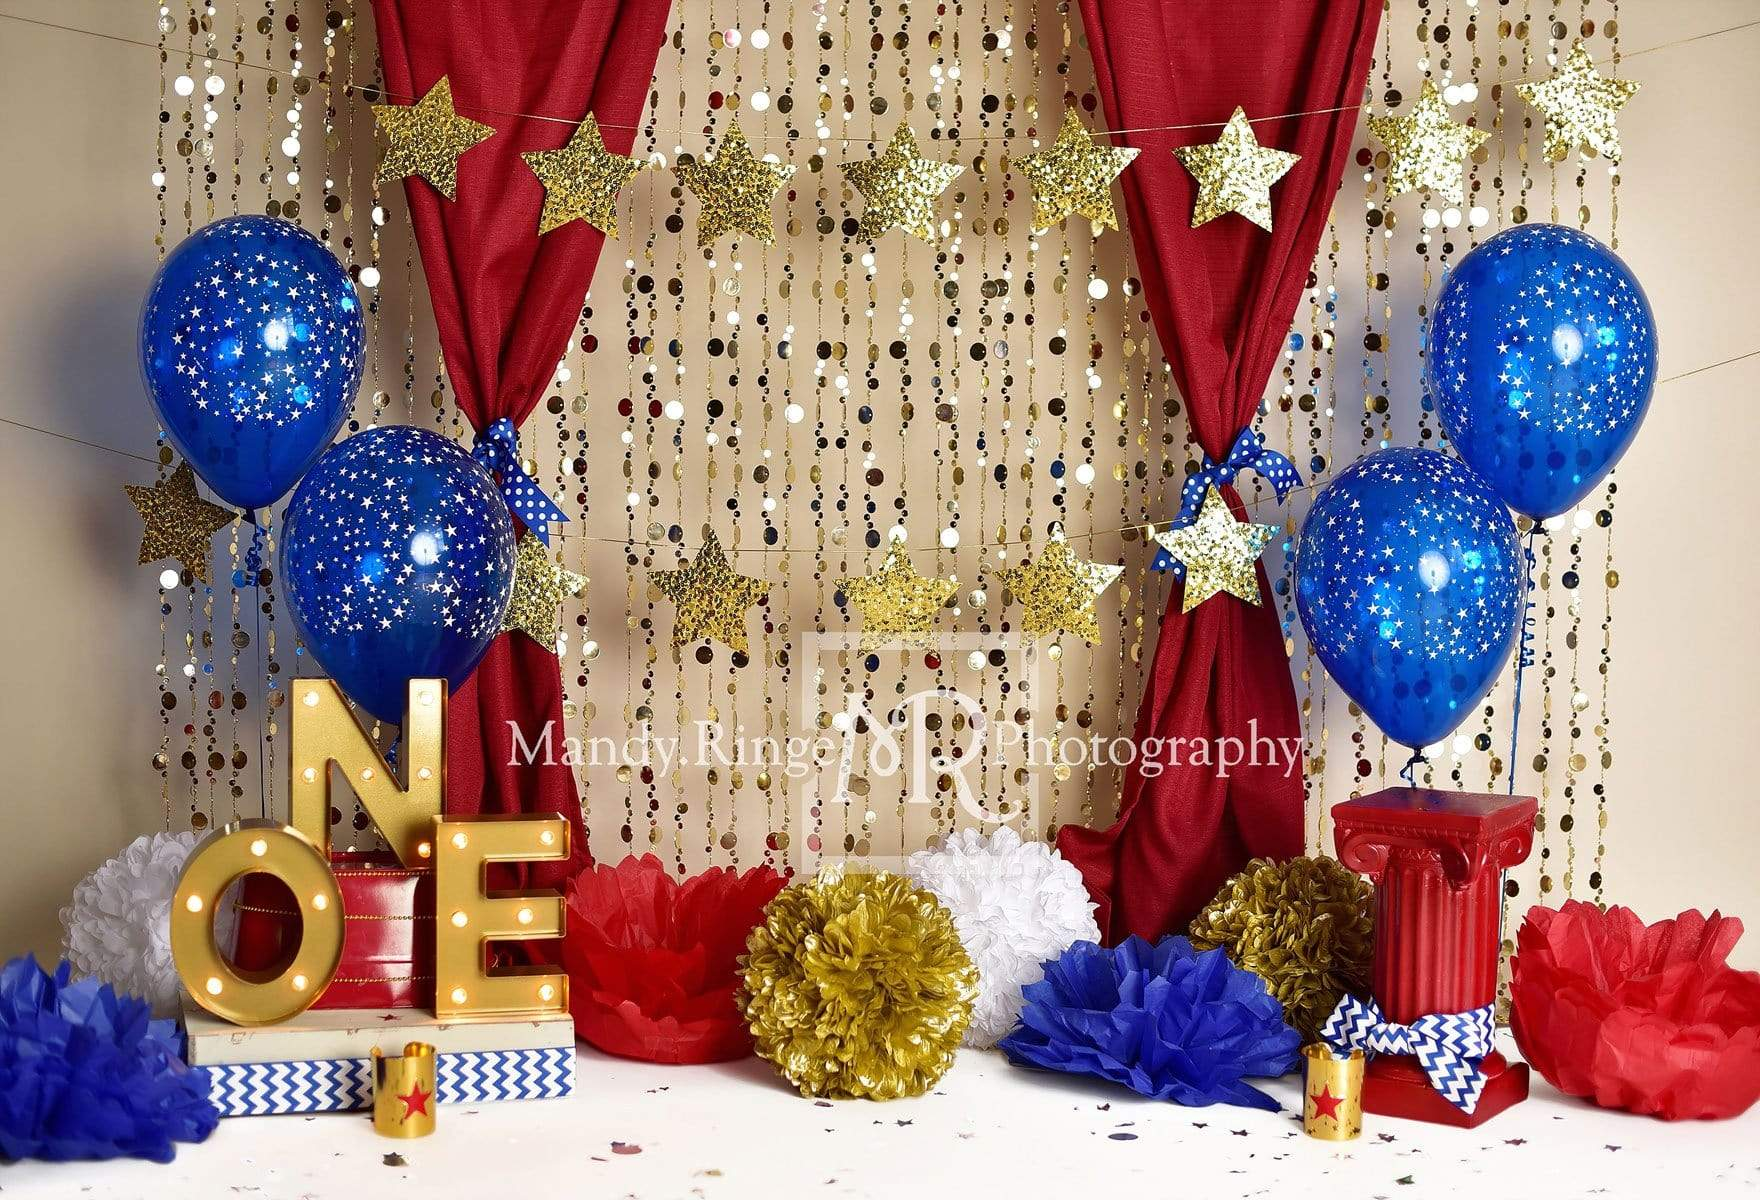 Load image into Gallery viewer, Katebackdrop£ºKate One-der Woman First Birthday Balloons Backdrop for Photography Designed by Mandy Ringe Photography